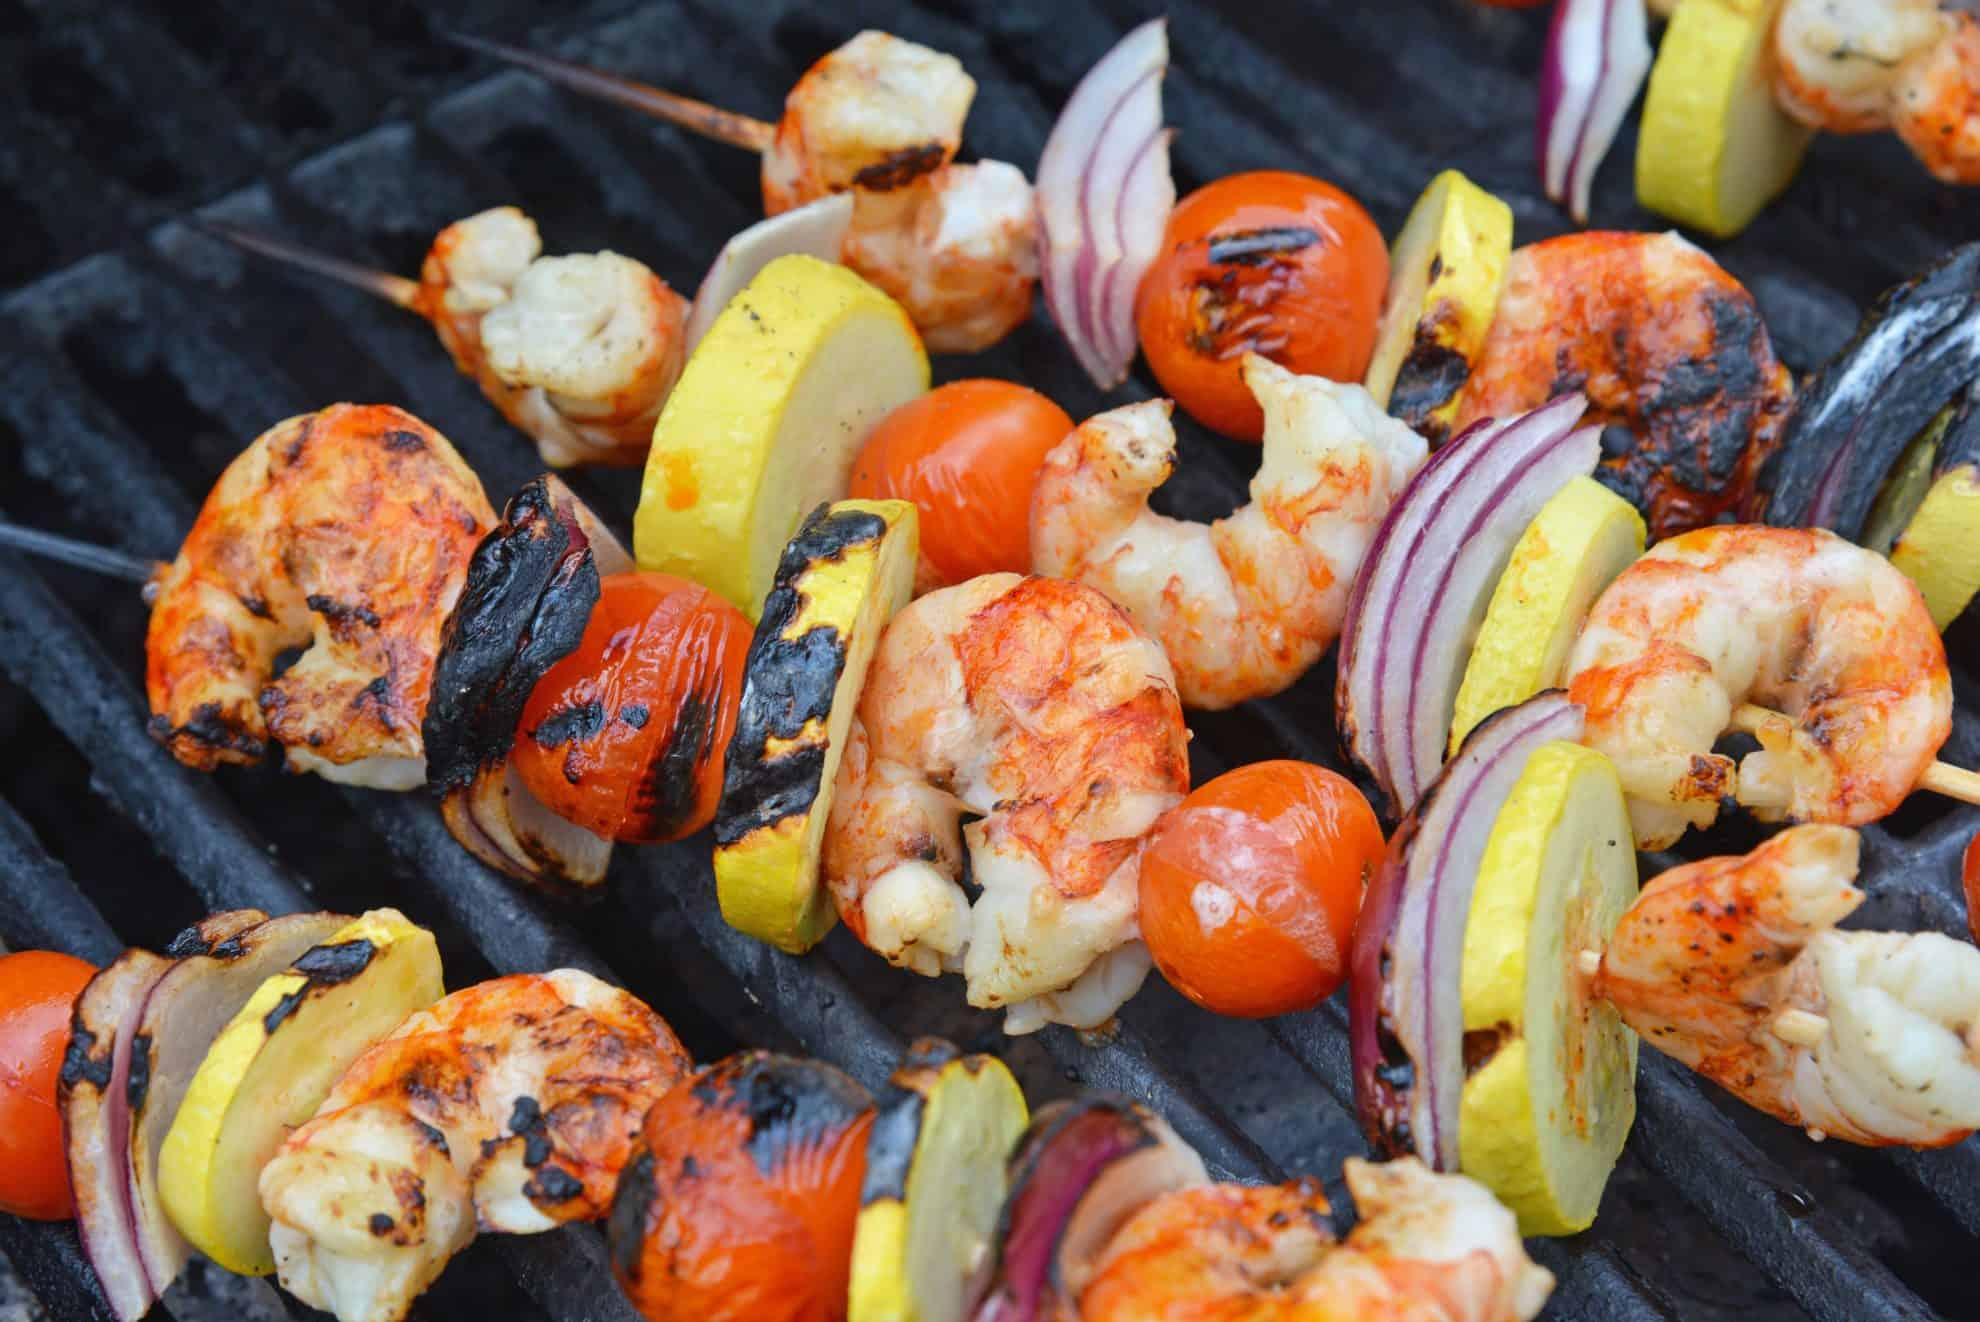 Garlic shrimp kabobs on the grill